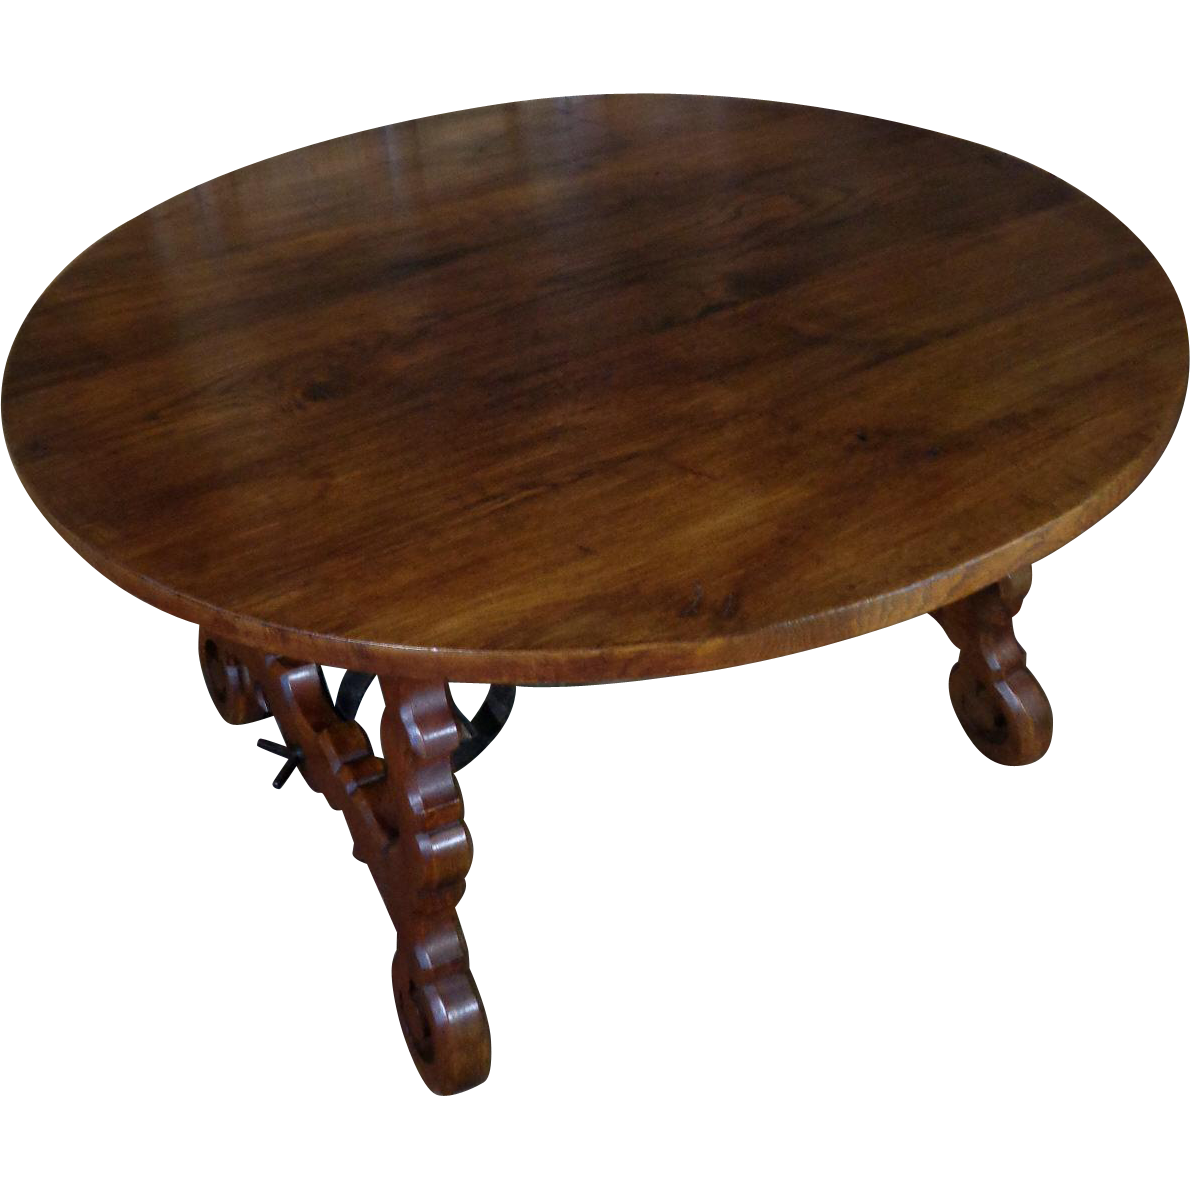 19th century antique spanish round oak dining table from nicolemaleineantiques on ruby lane - Round oak dining tables ...